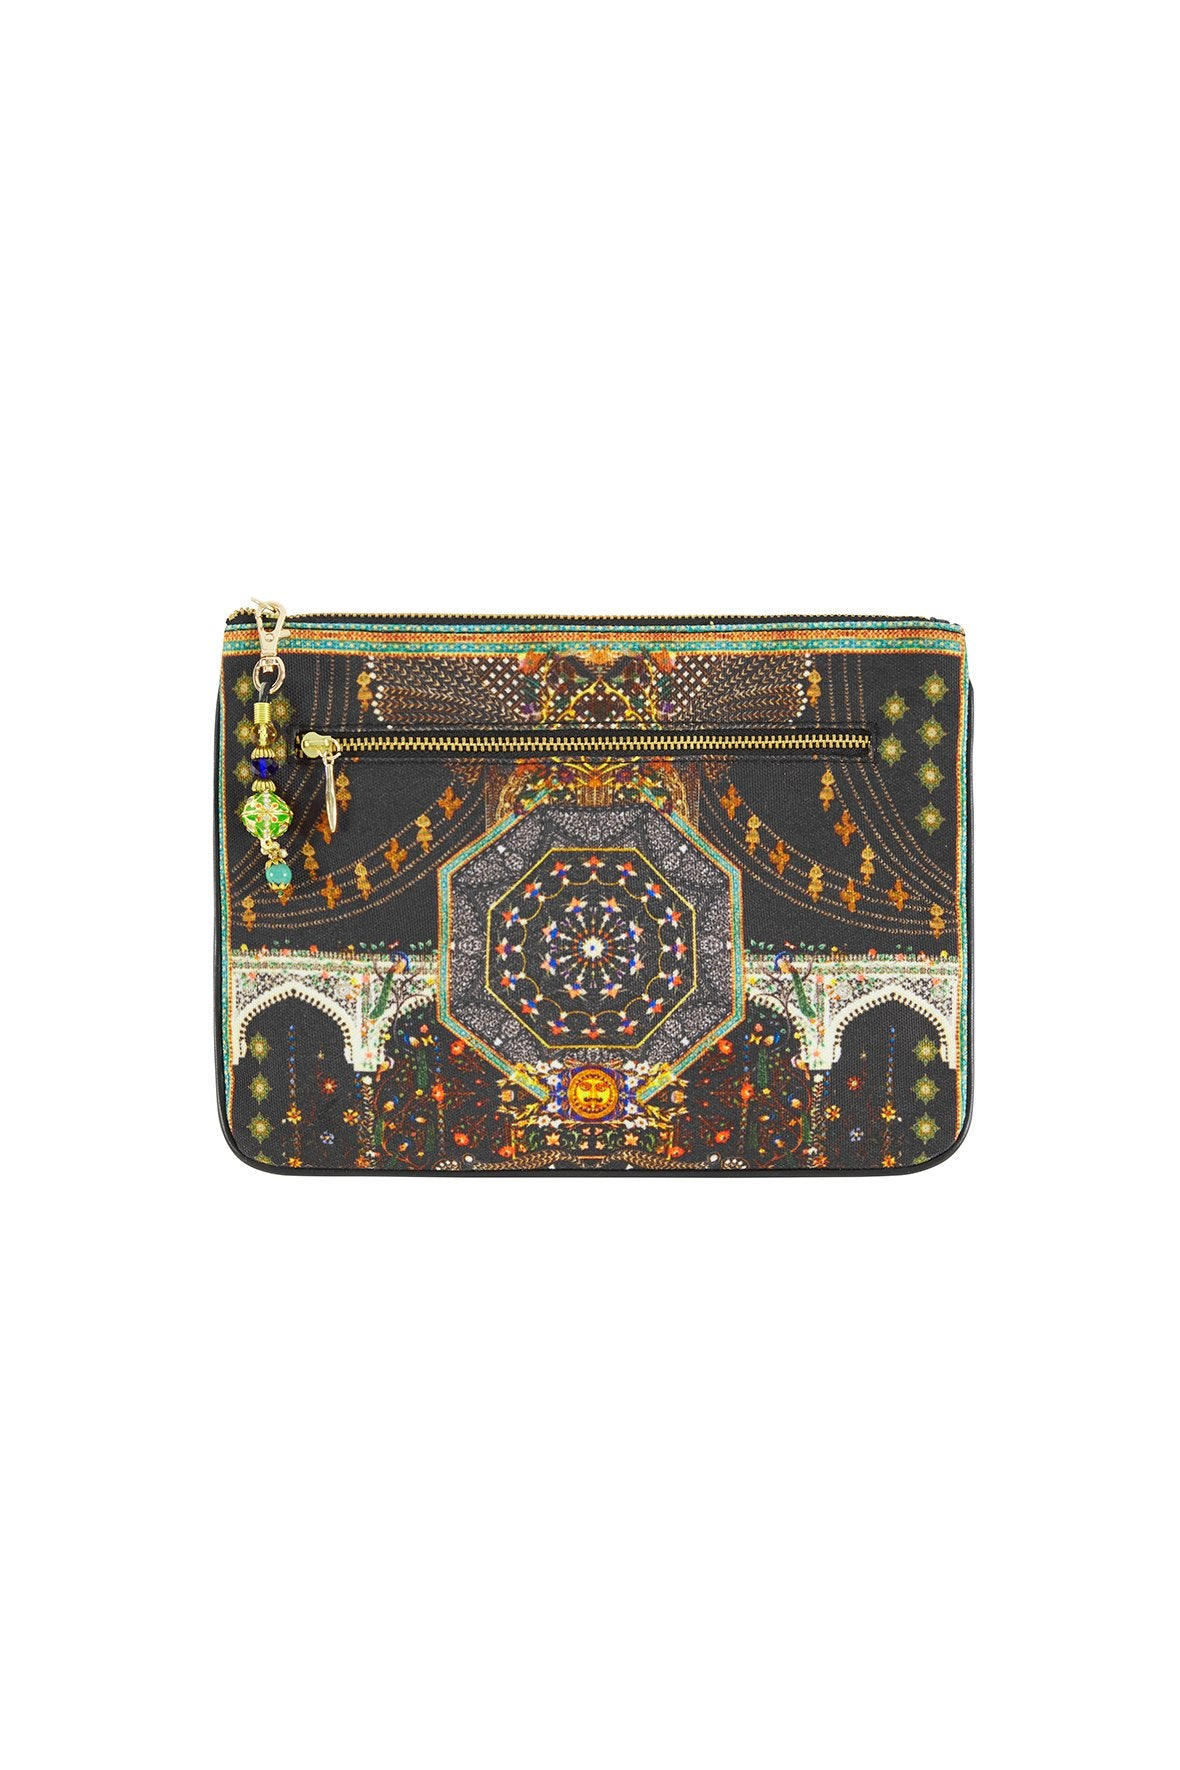 BEHIND CLOSED DOORS SMALL CANVAS CLUTCH